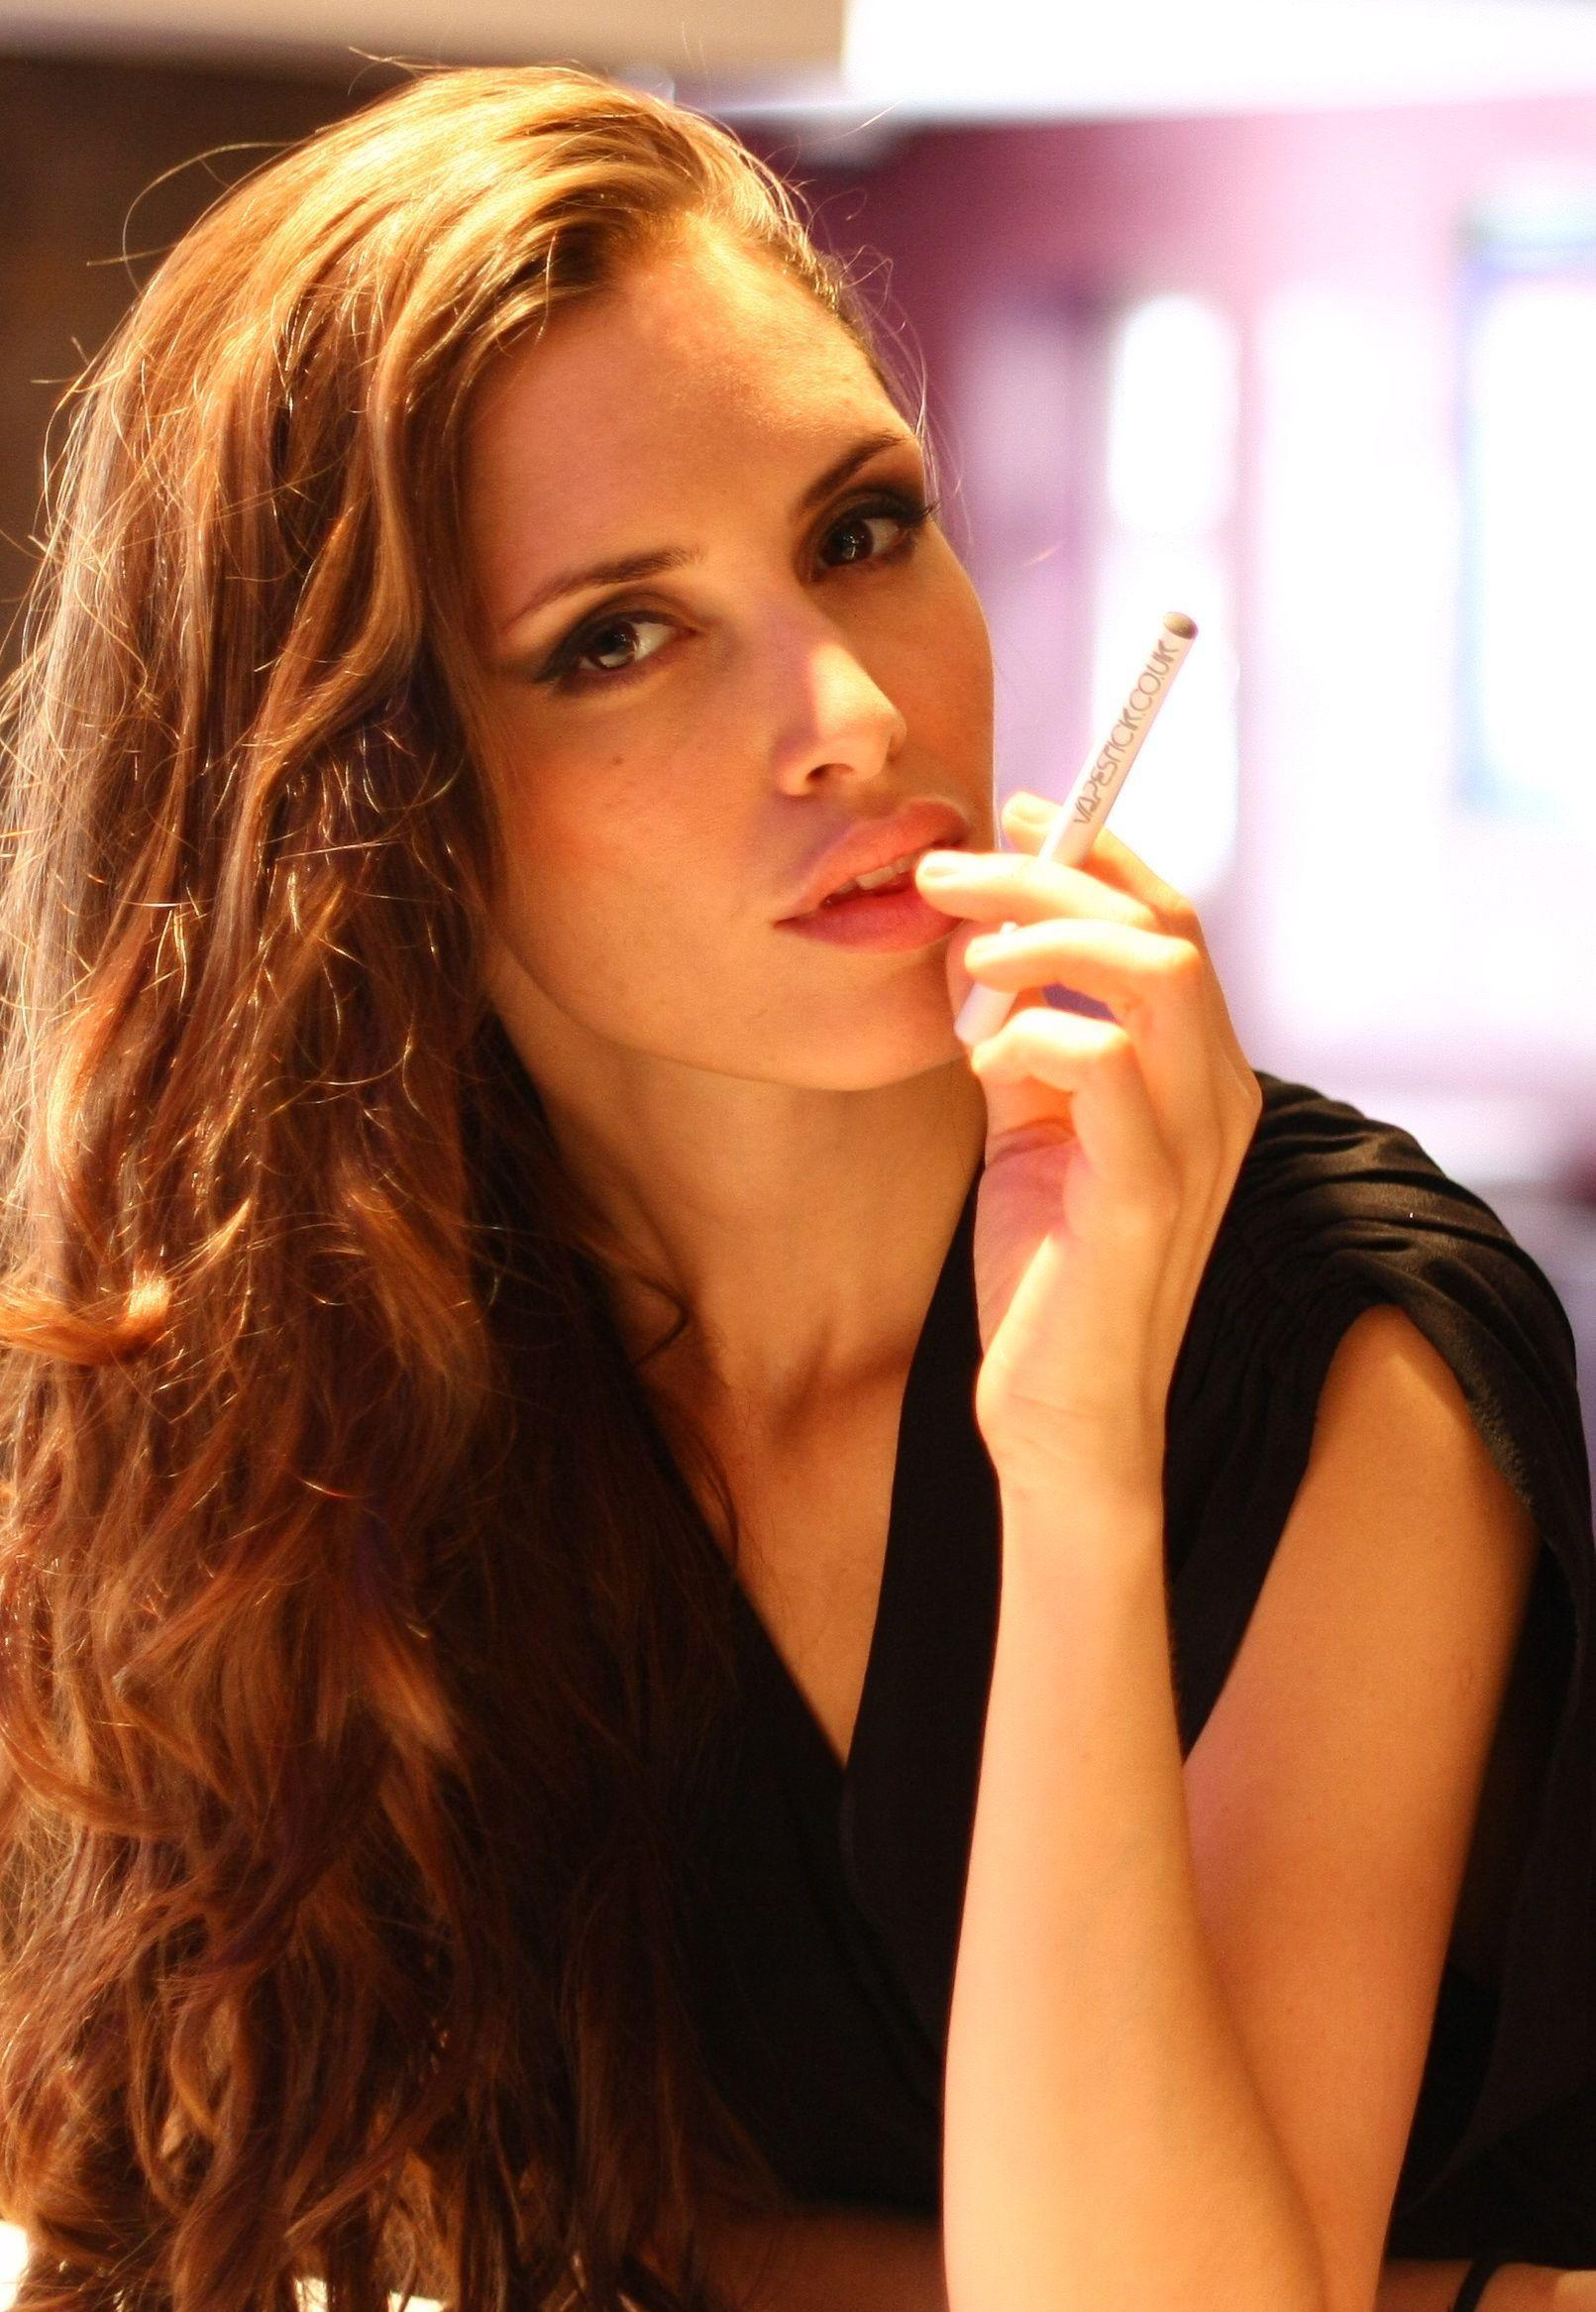 best of Smoking trannies Cigareete